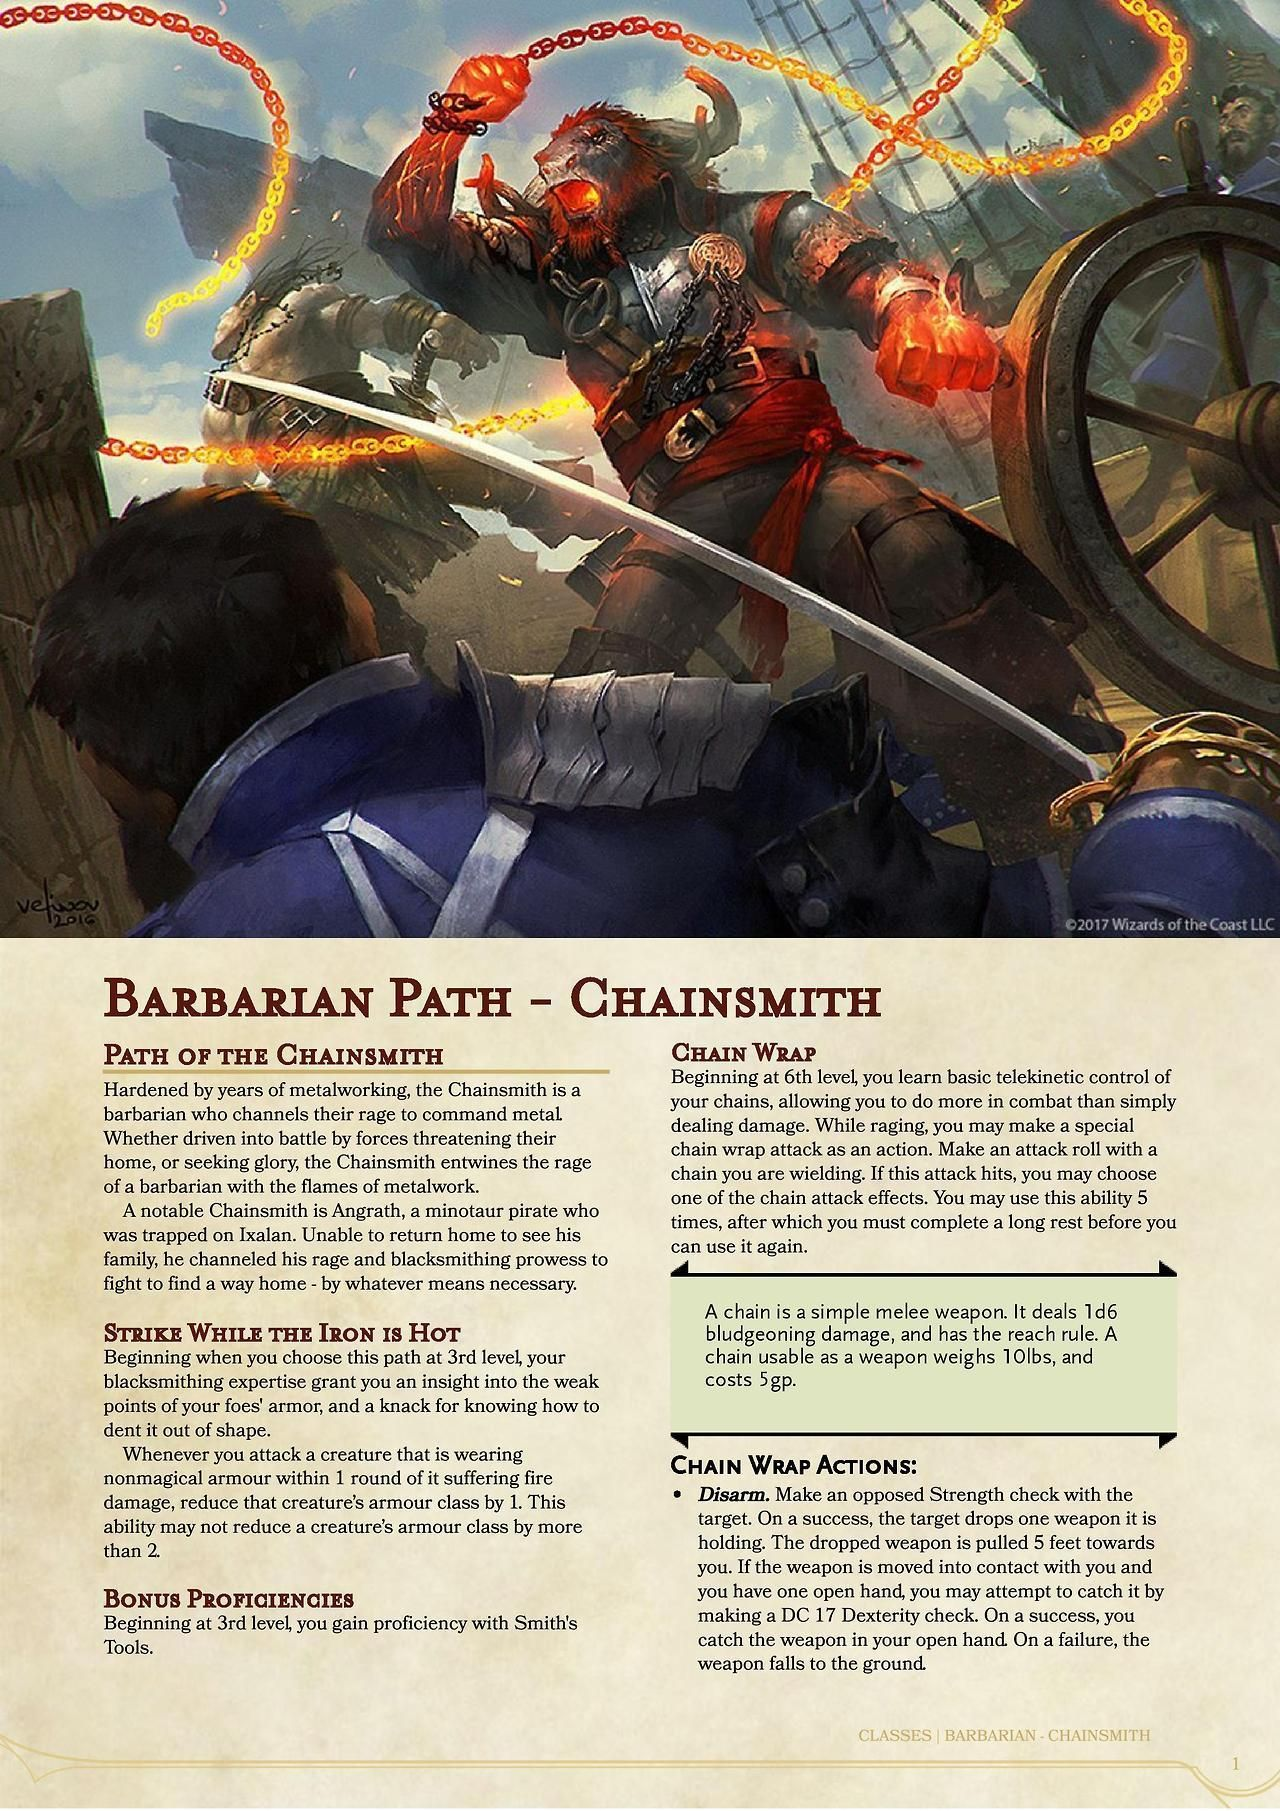 Kor Artificer - New RPG homebrew content every Saturday — Barbarian